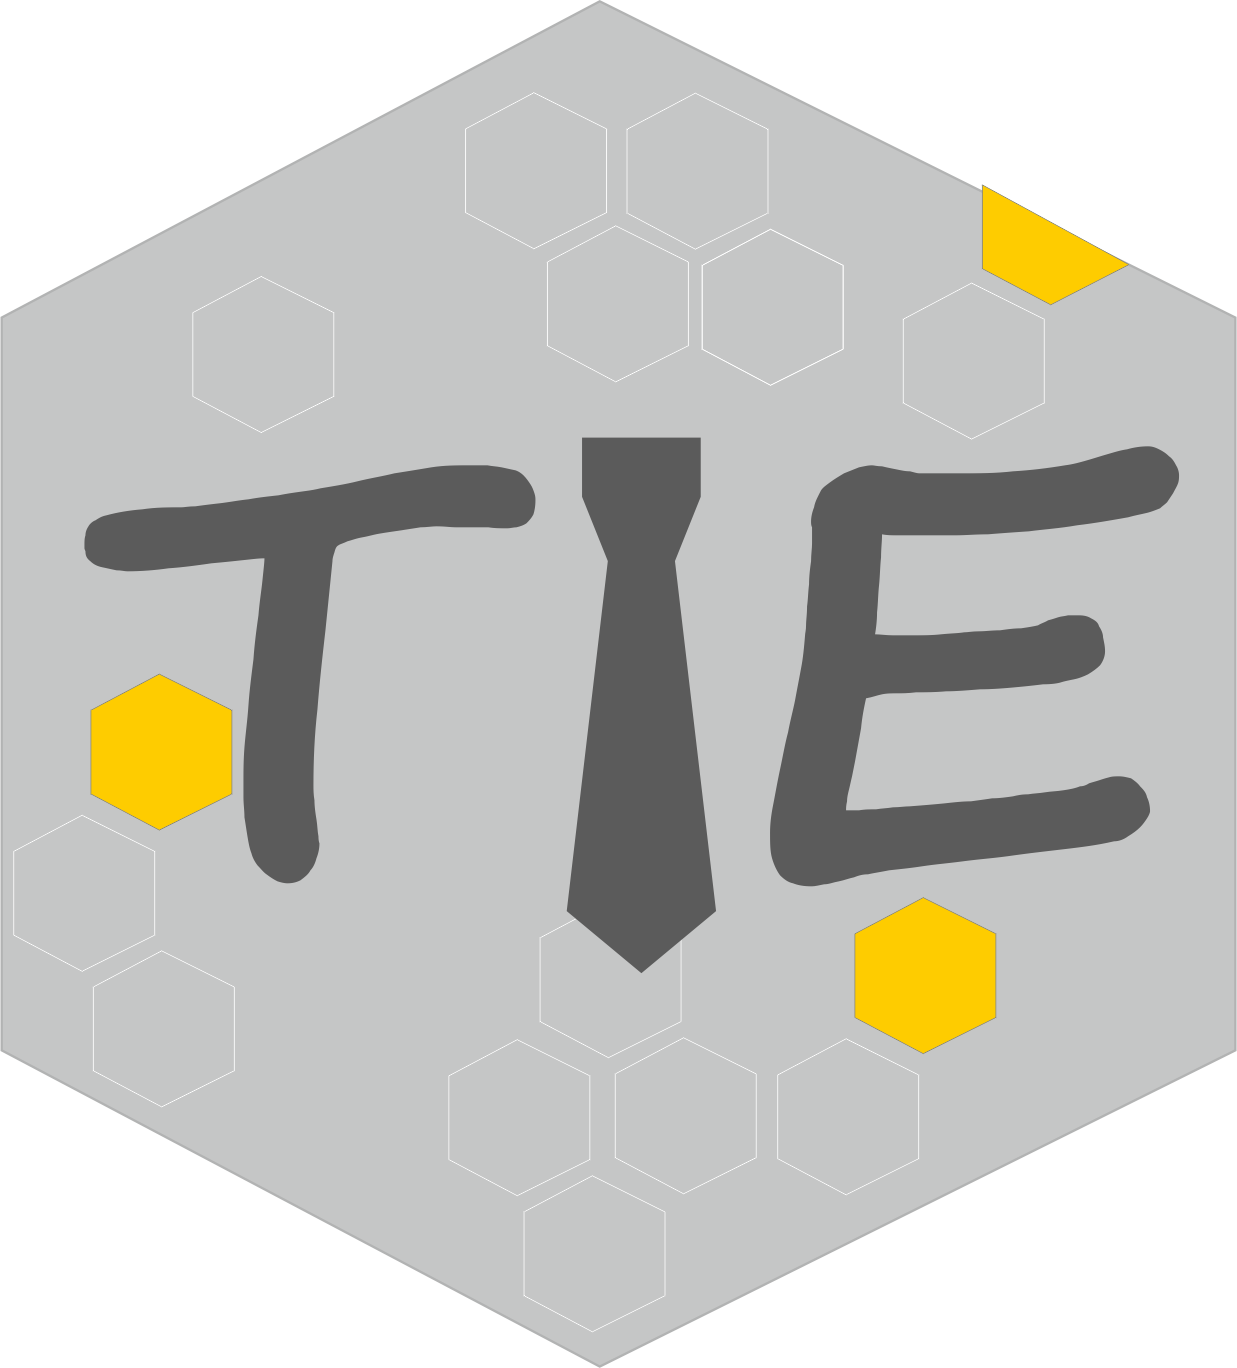 TIE – Teaching is easy